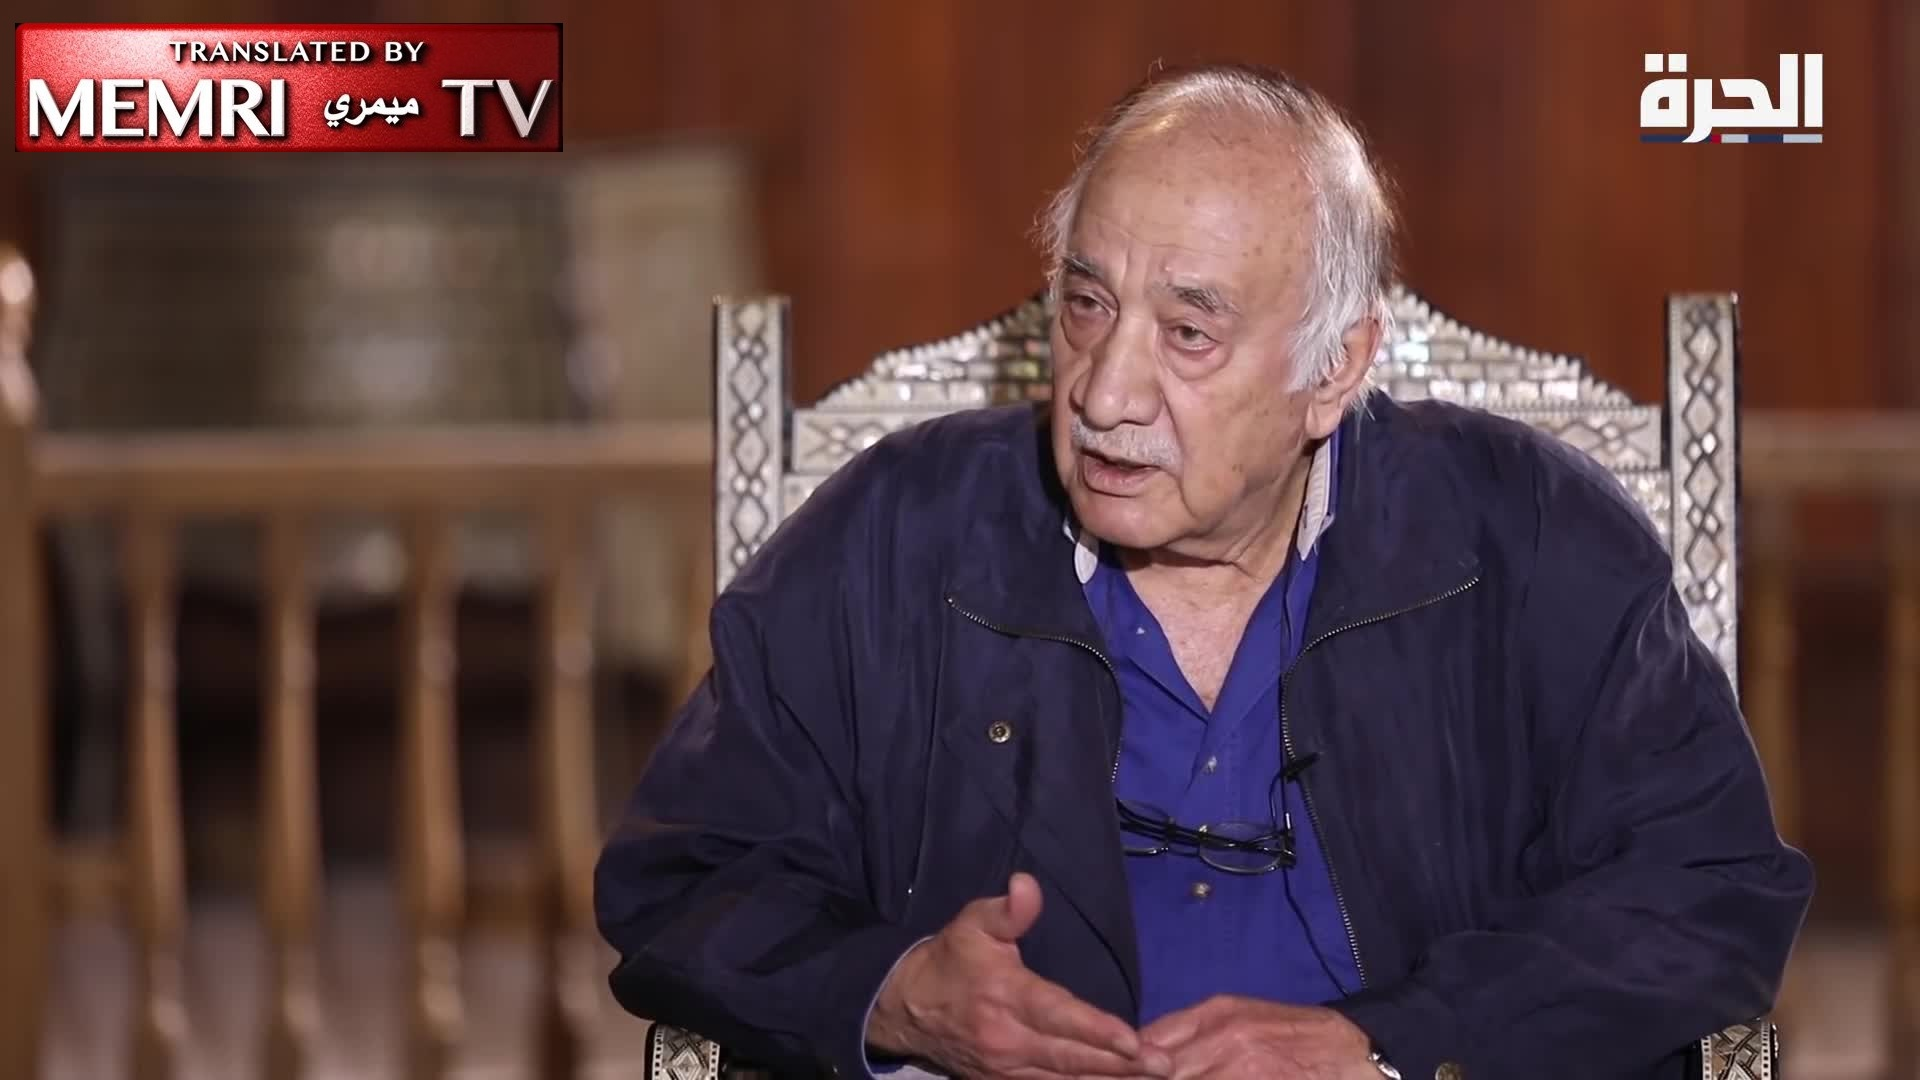 Syrian Scholar Firas Al-Sawwah: Al-Aqsa Mentioned in Quran Is Not in Jerusalem; We Should Critically Examine Our Past and Some of Our Religious Traditions